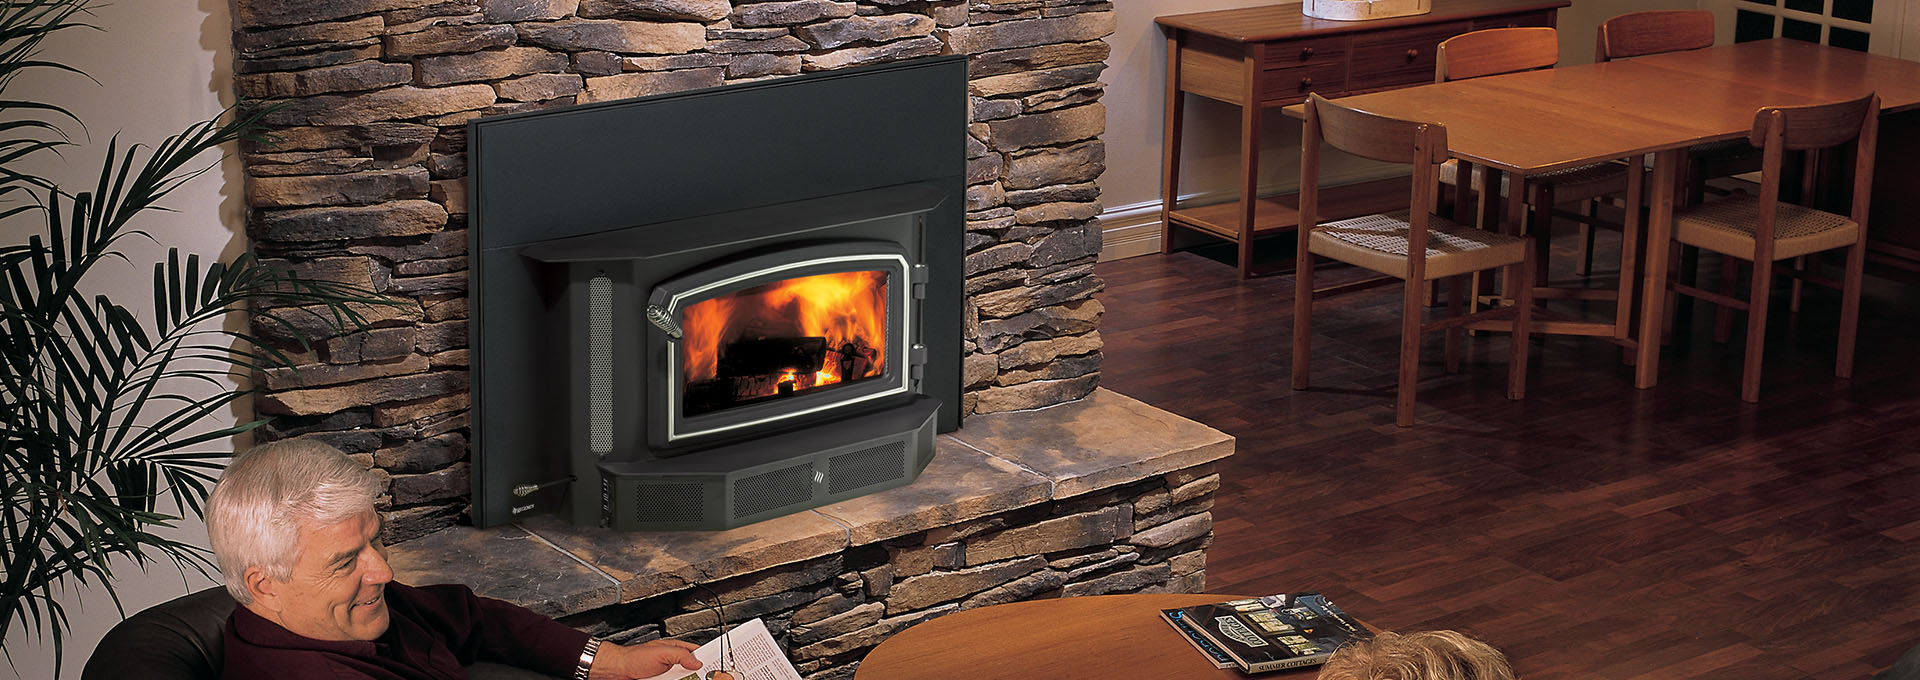 castings fireplace winterwarm insert manual central wood electric parts vermont model inserts